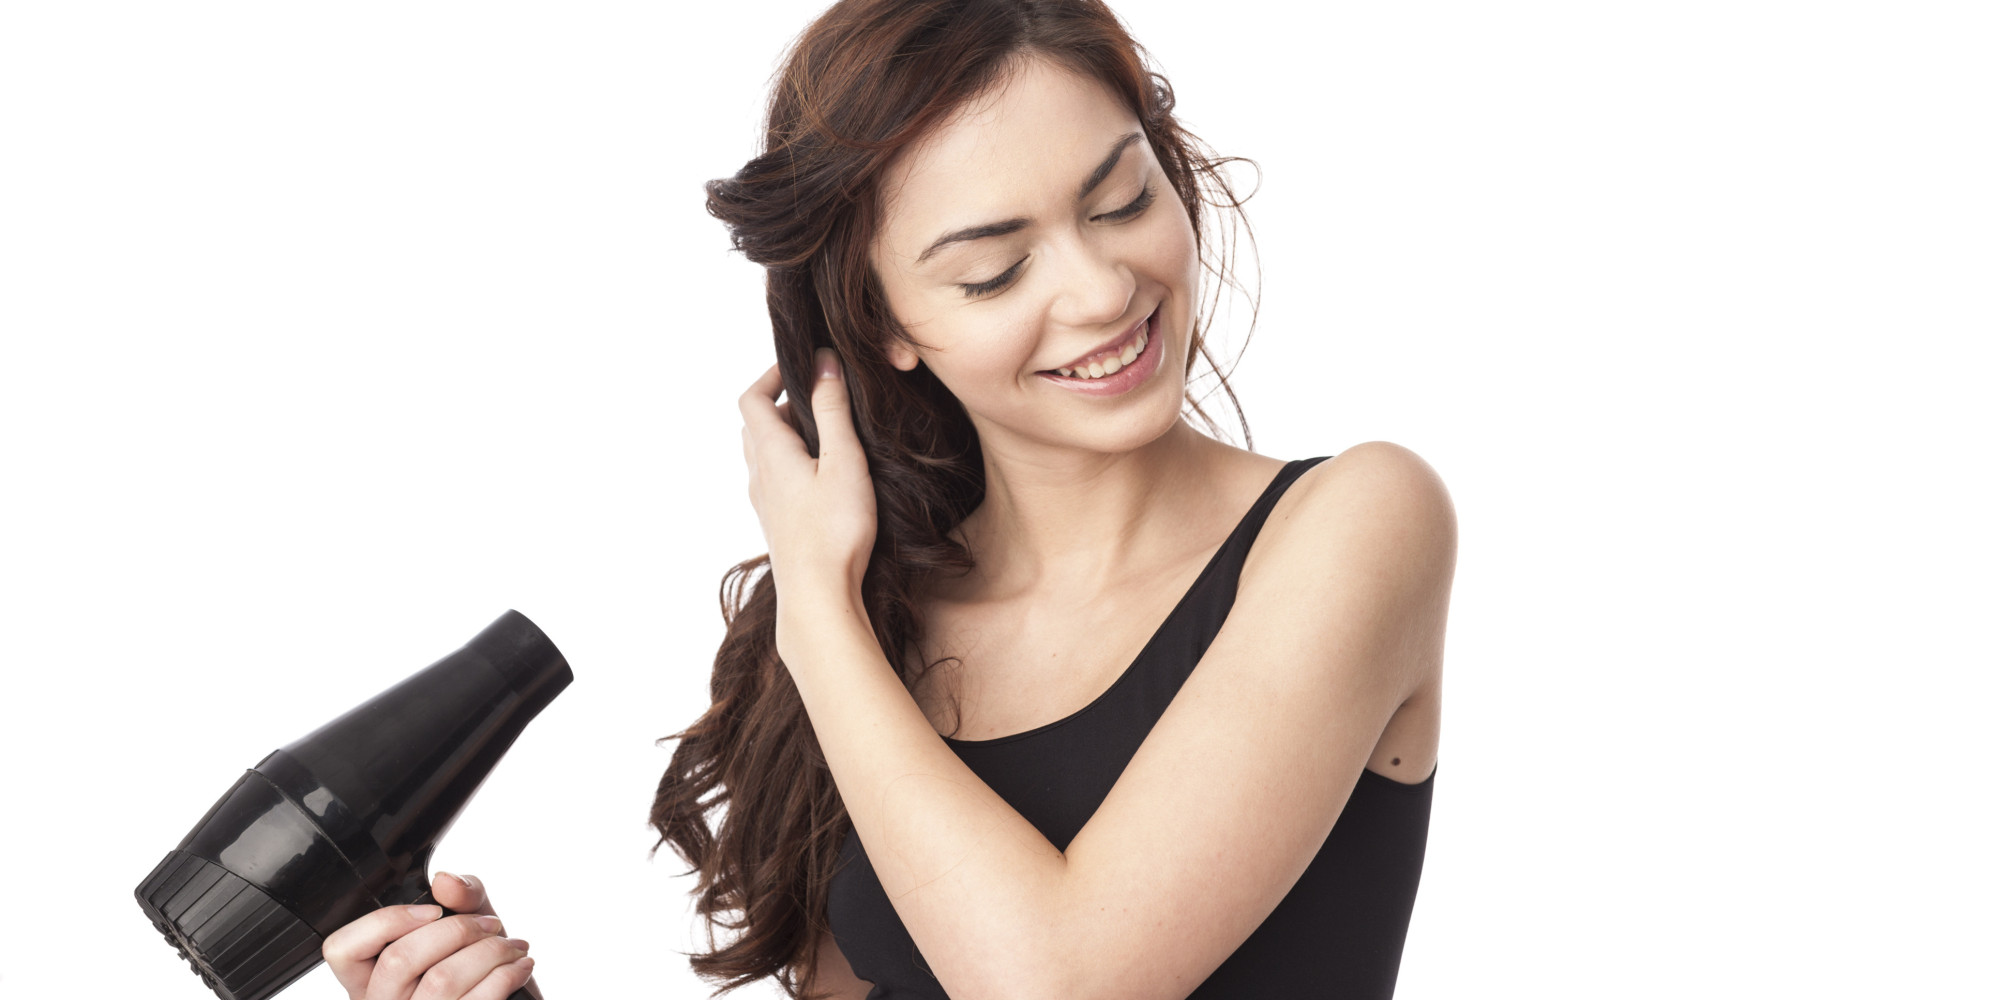 10 unusual uses for your hair dryer - Unusual uses for a hair dryer ...